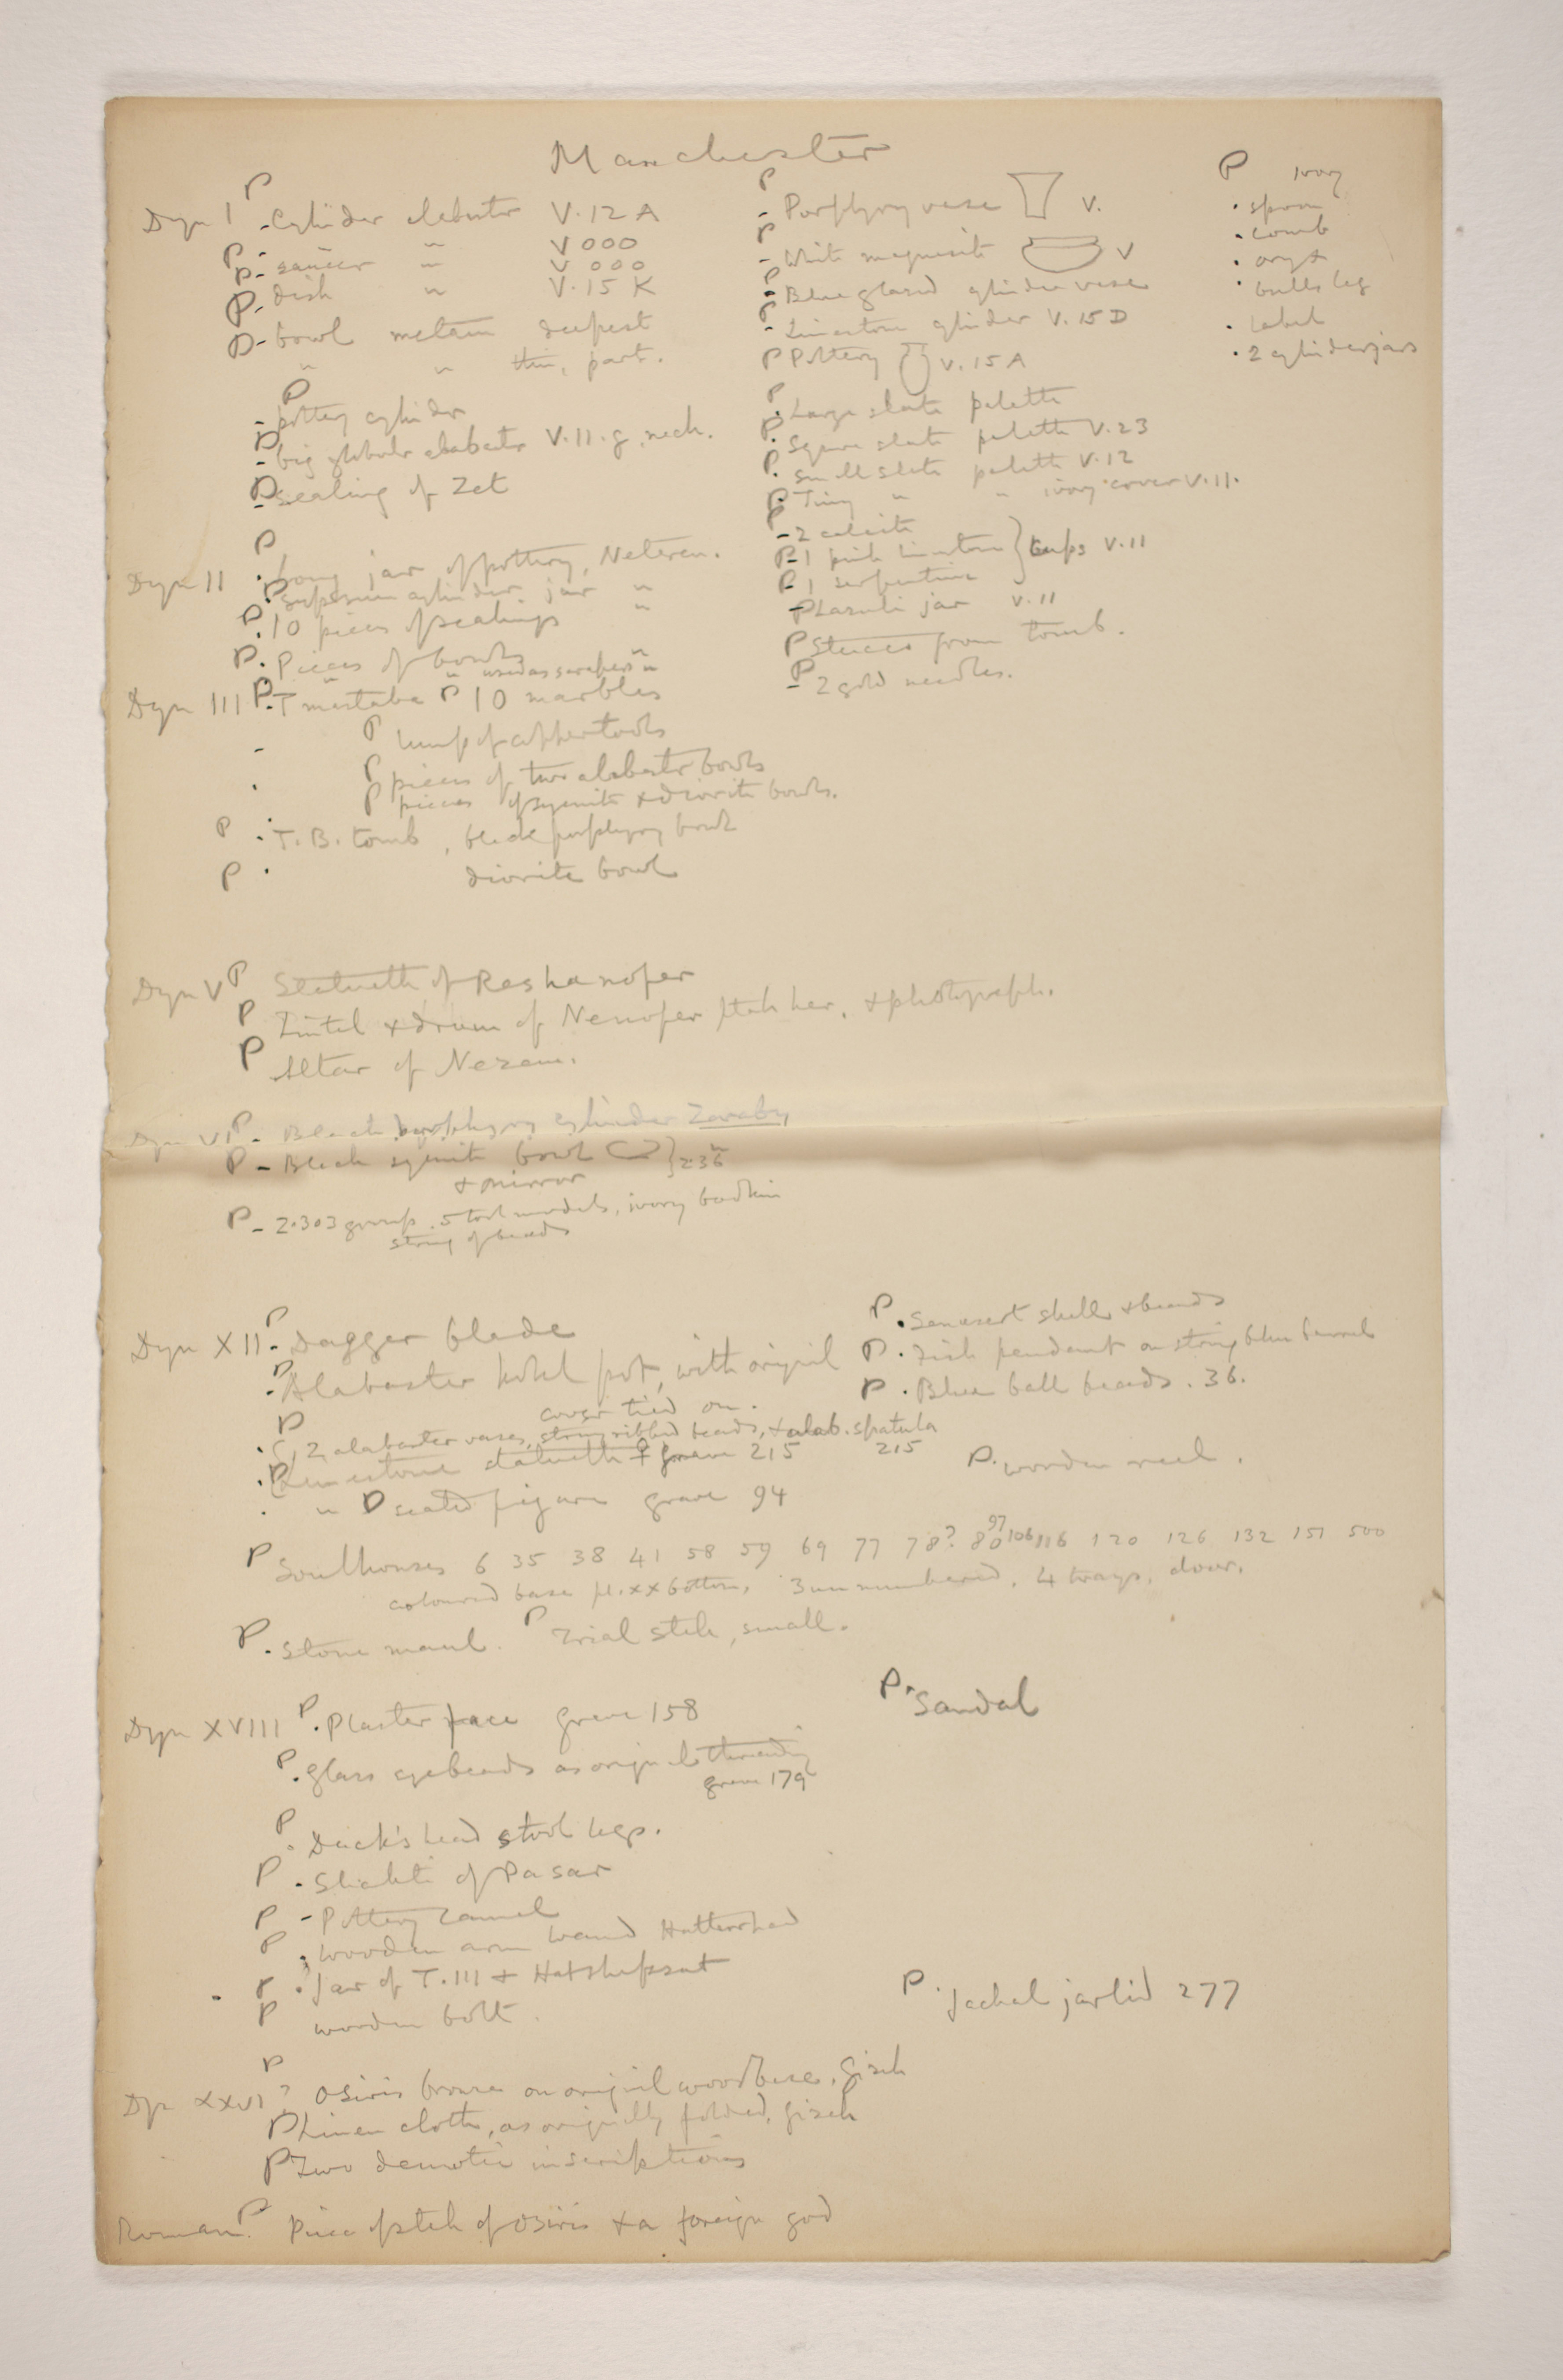 1906-07 Giza and Deir Rifeh Individual institution list  PMA/WFP1/D/15/10